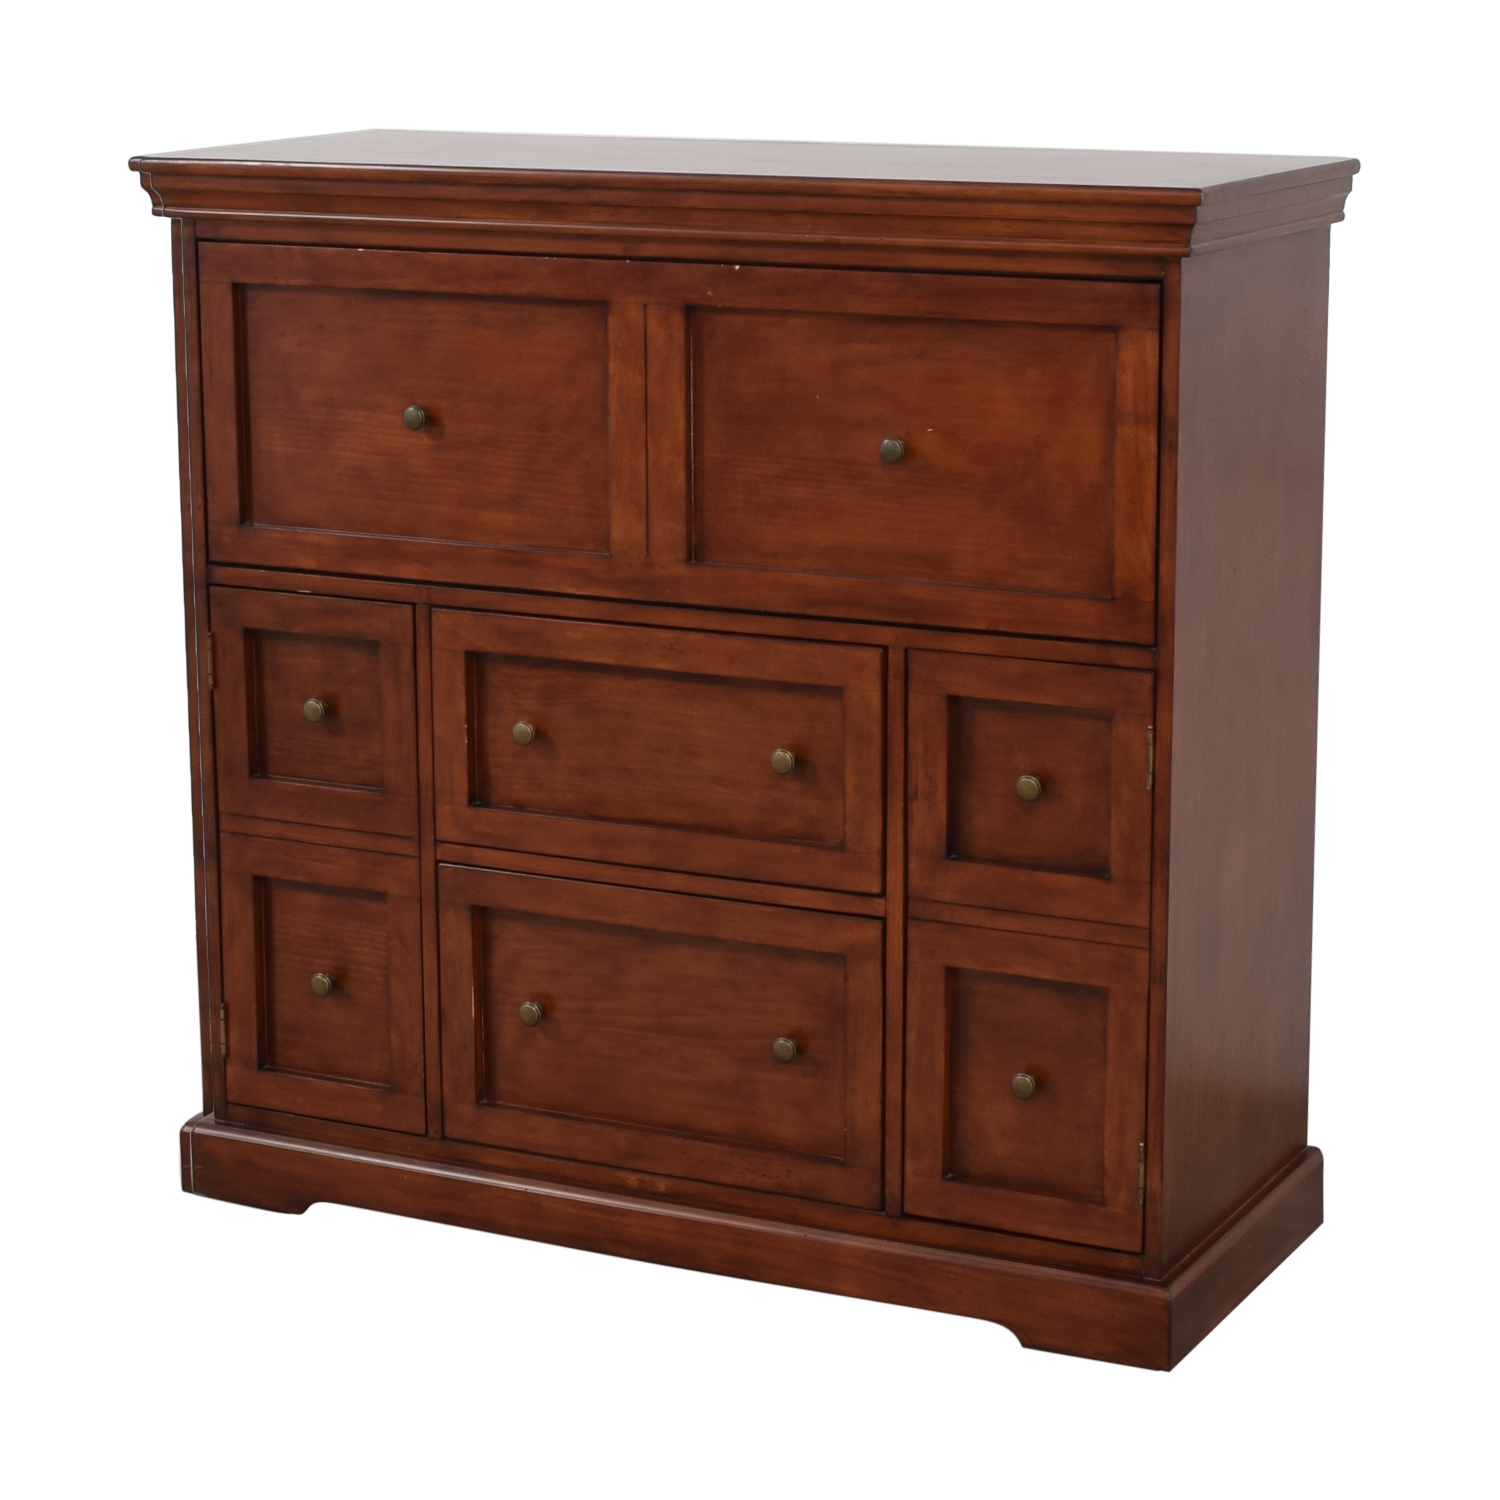 Ballard Designs Ballard Designs Eastman Large Brown Secretary Desk price